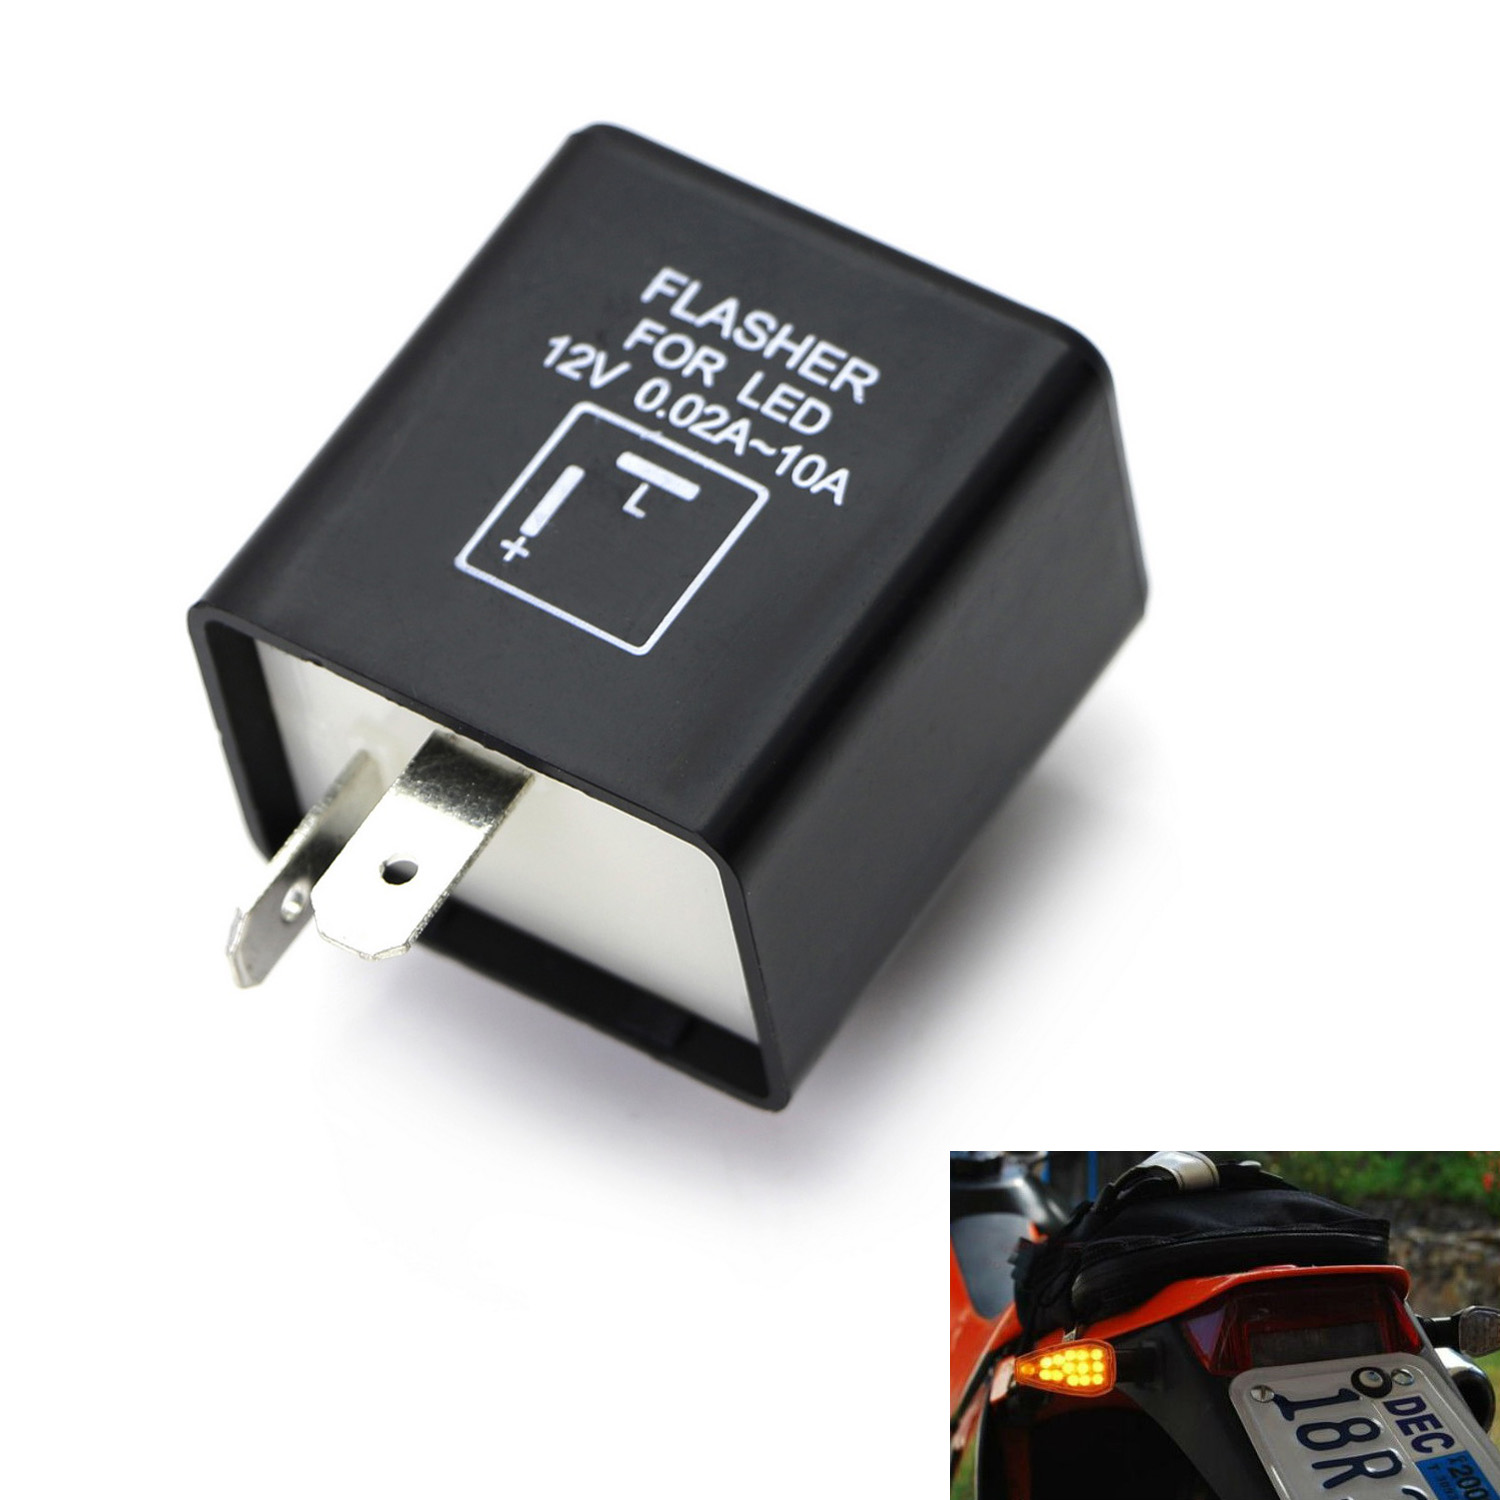 iJDMTOY 40 40 Pin Electronic LED Flasher Relay Fix For Motorcycle or  Scooter Install LED Turn Signal Bulbs Hyper Flash Issues   Walmart.com